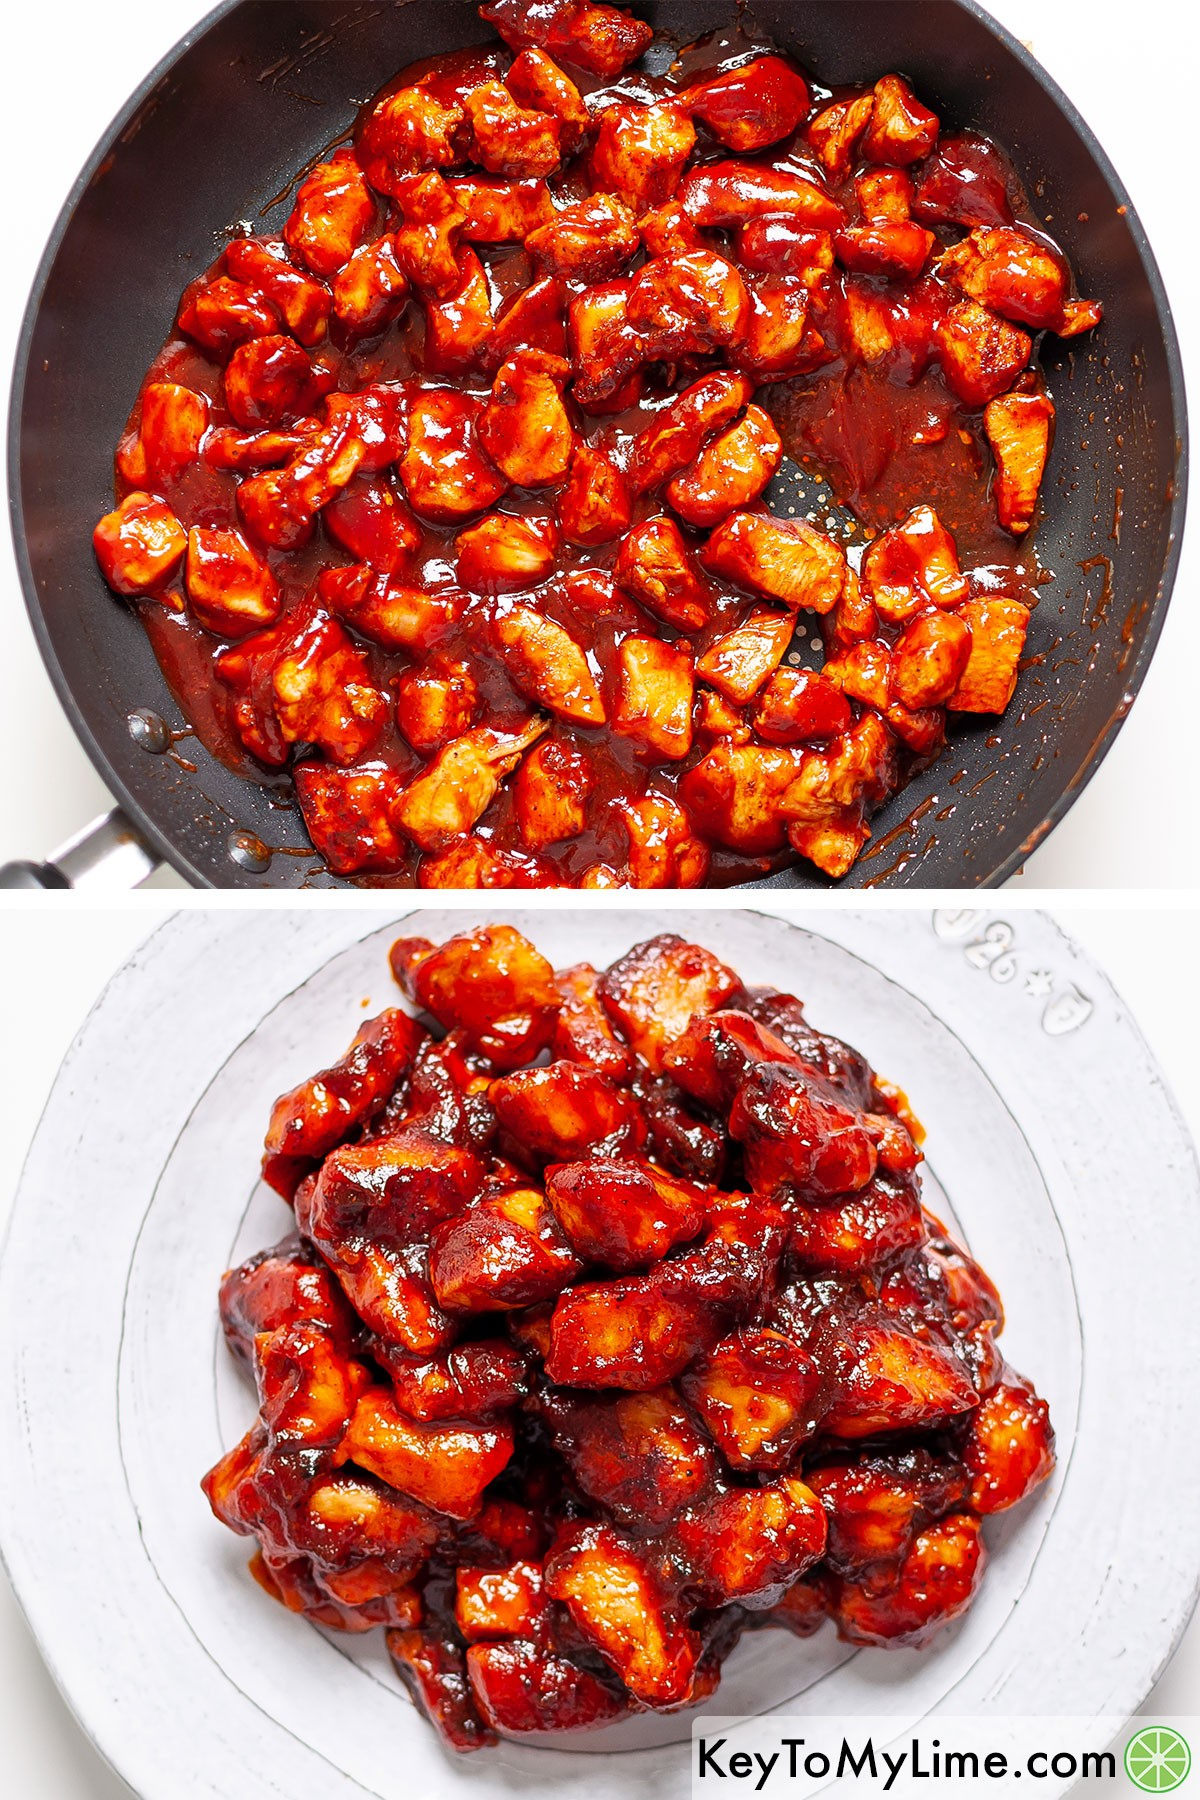 Chunks of chicken breast in BBQ sauce before and after letting the sauce reduce.